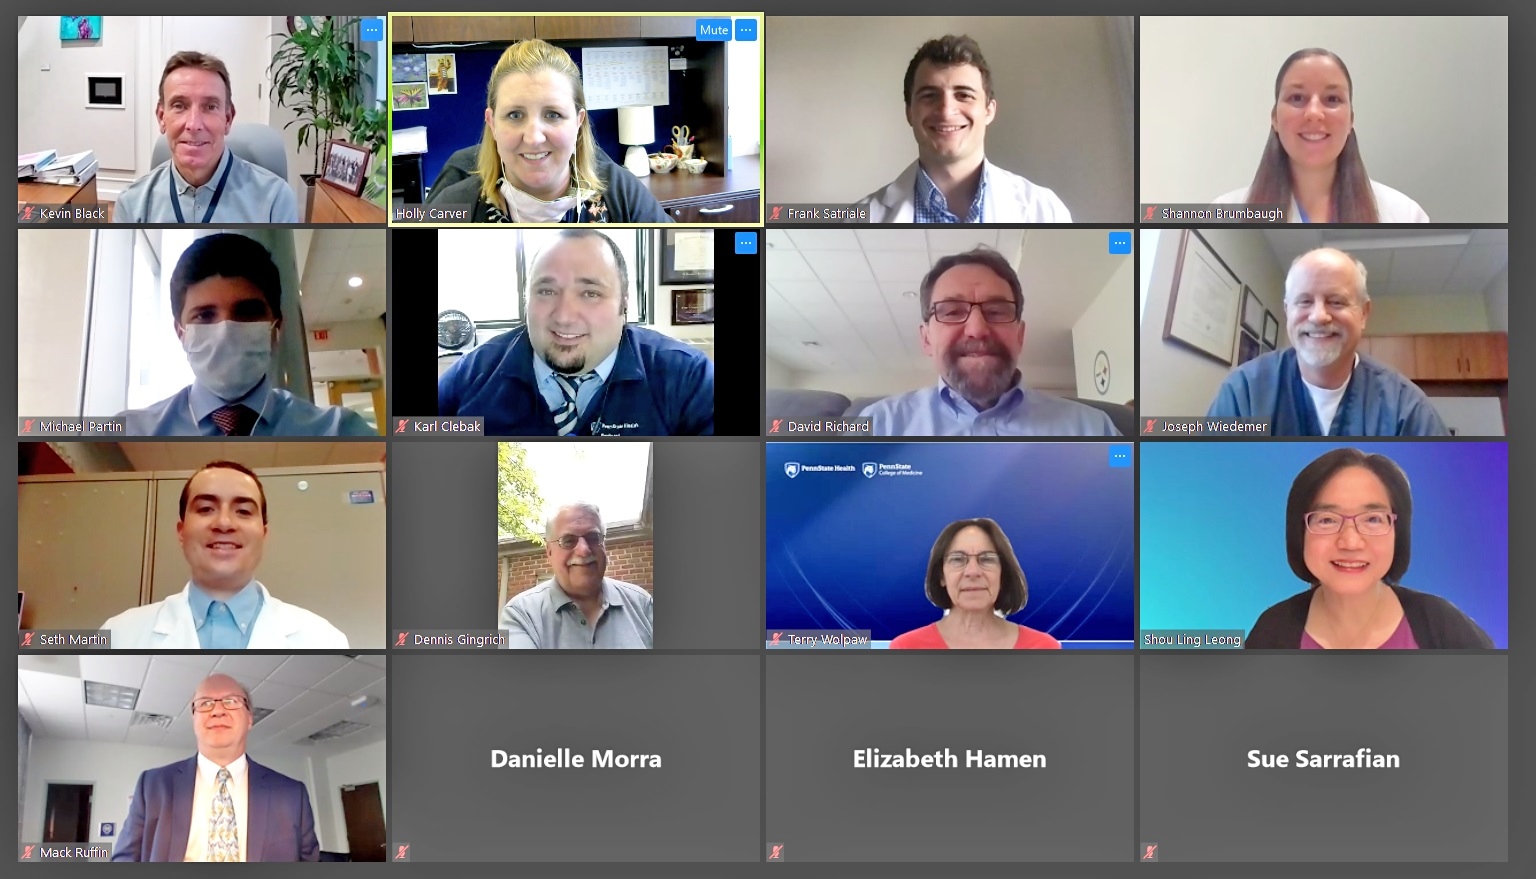 A screenshot from a Zoom videoconference shows a grid of 16 smaller images, each with showing a person on video chat or their name.